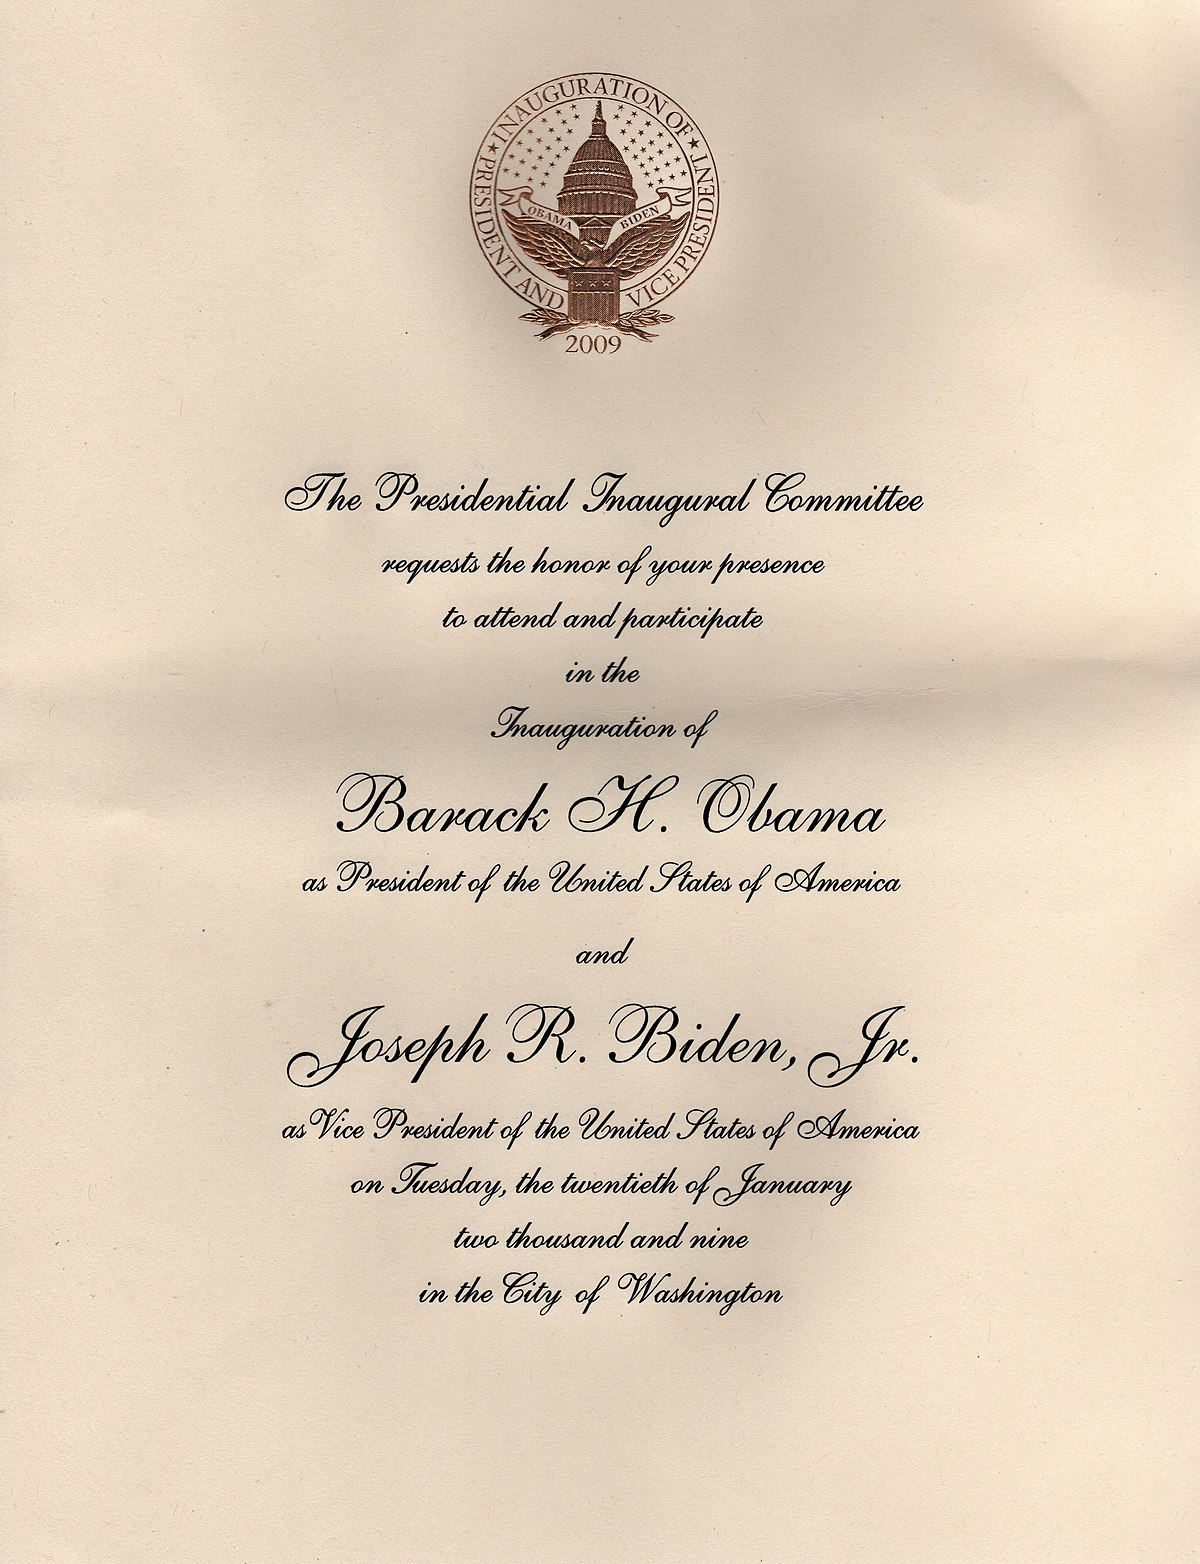 invitations to the first inauguration of barack obama wikipedia